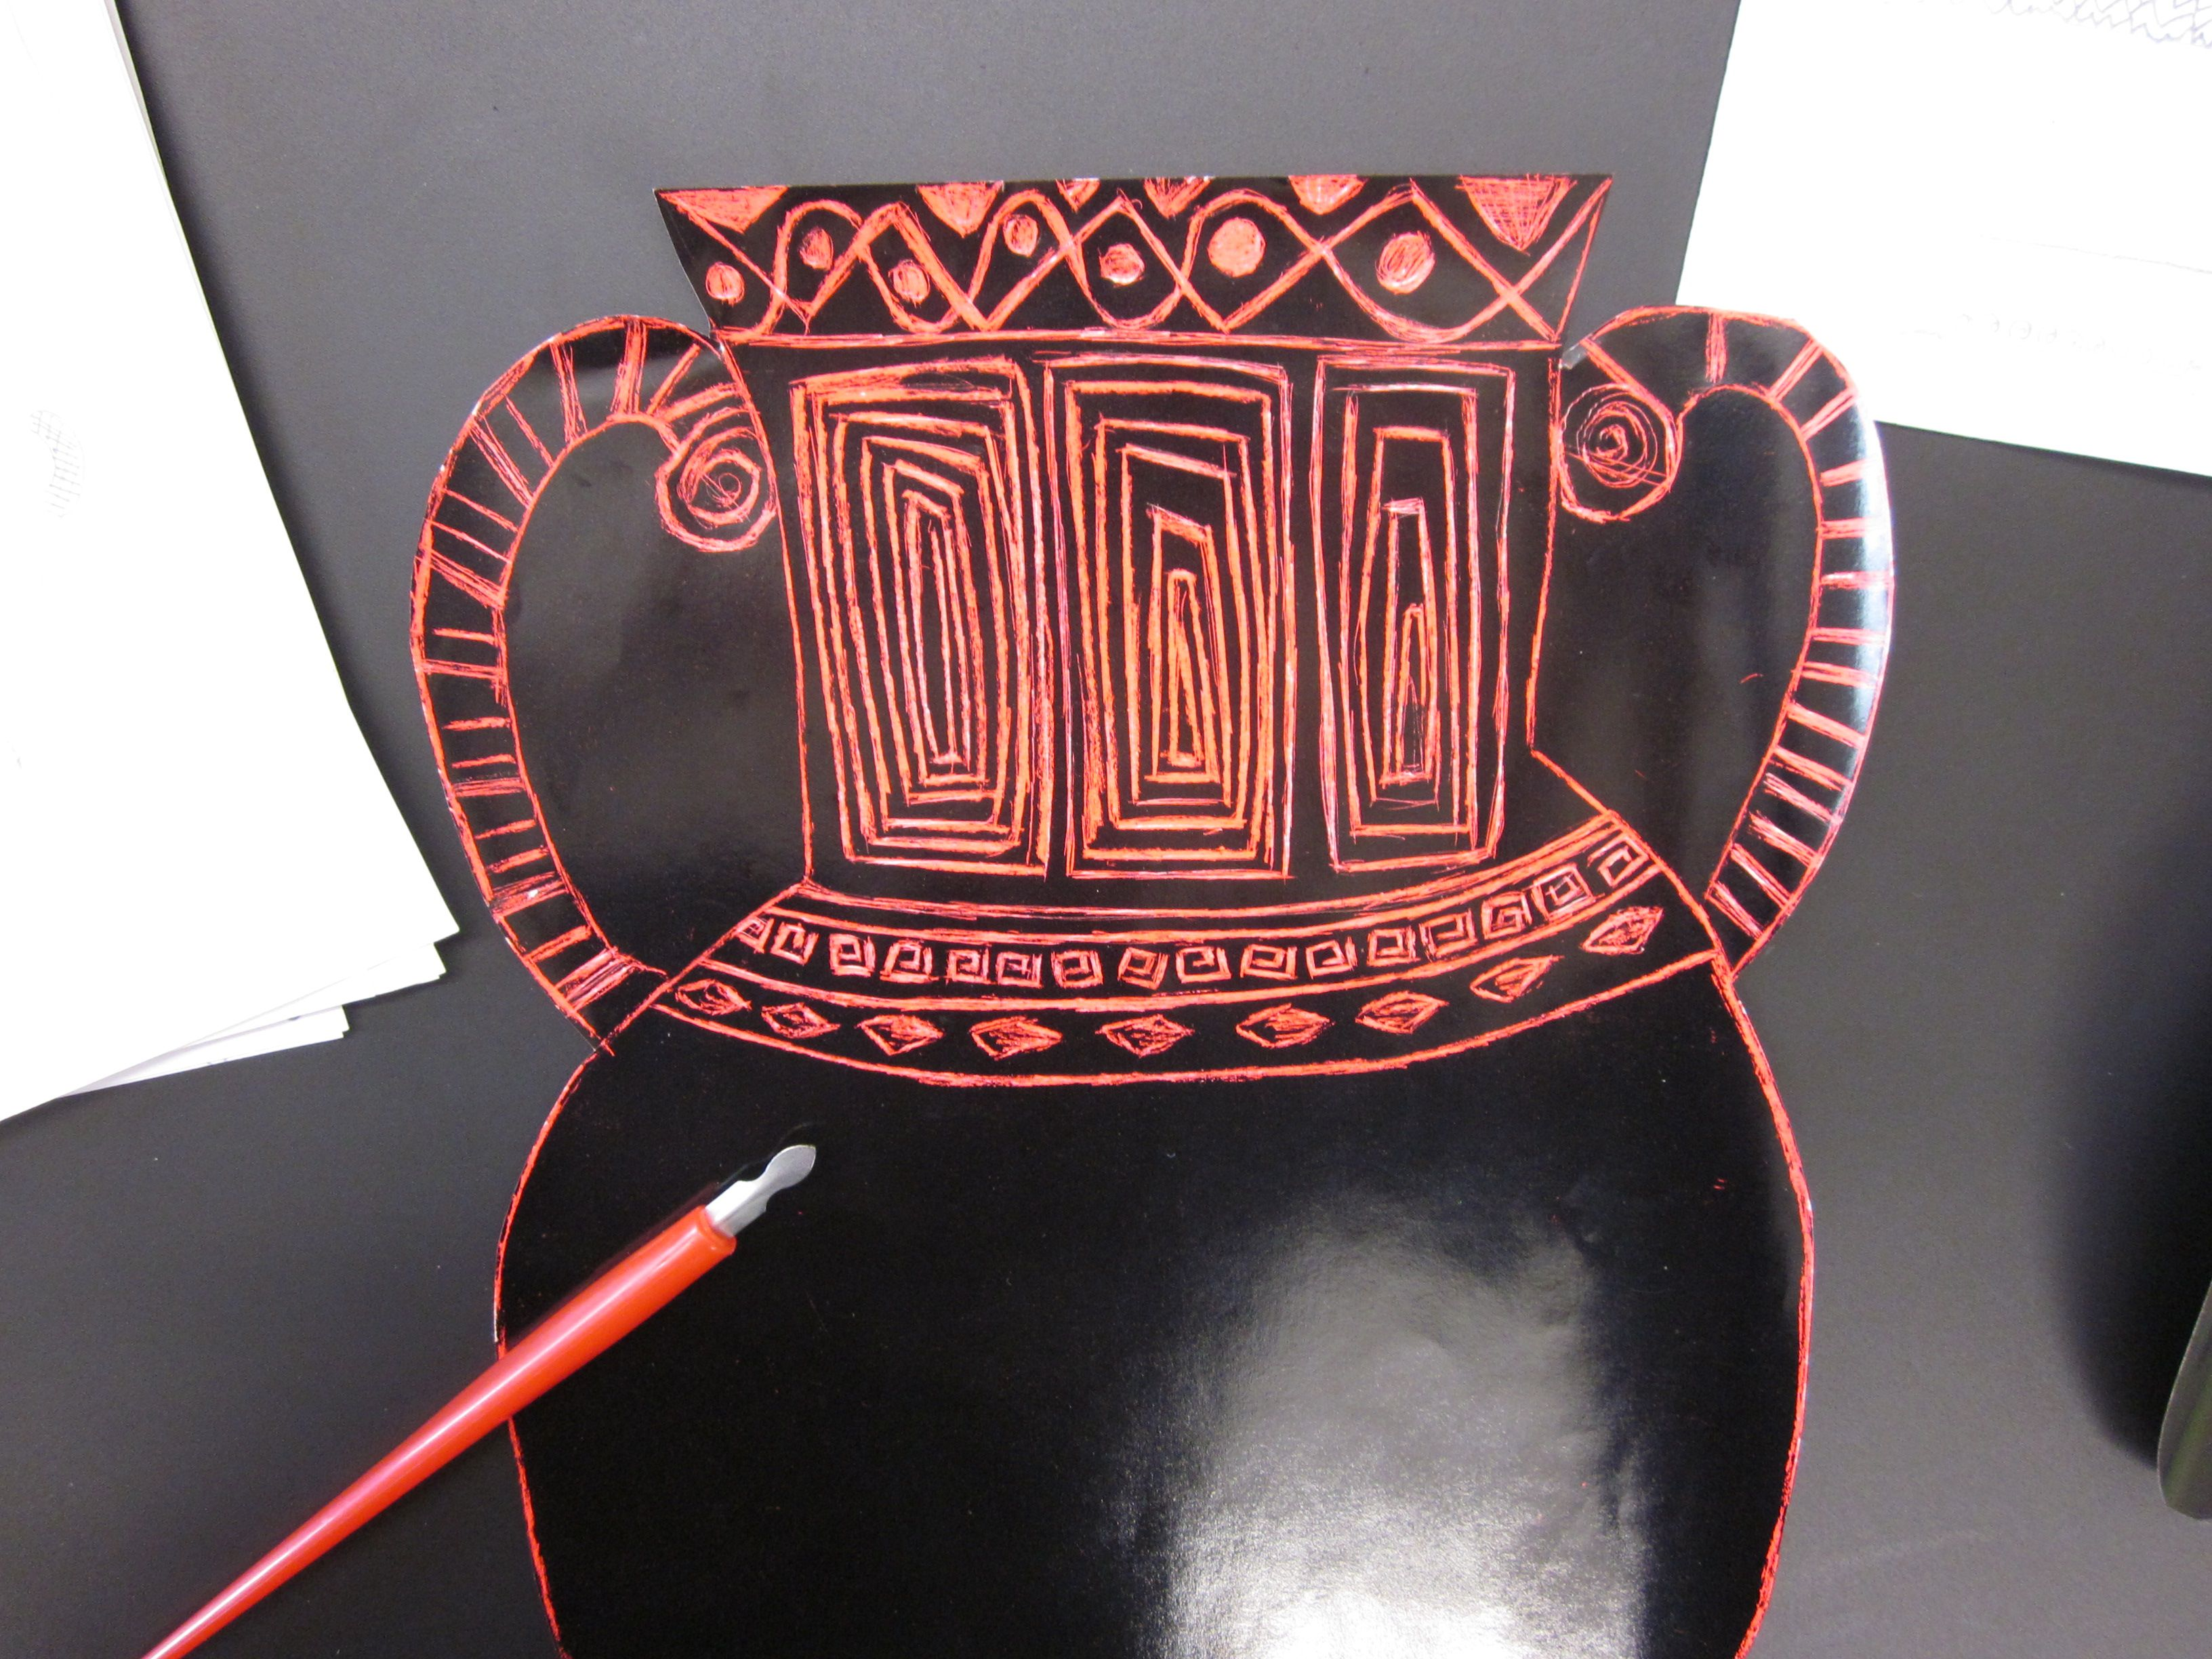 Scratch art greek vases prior to making paper mache vases 7th scratch art greek vases prior to making paper mache vases reviewsmspy